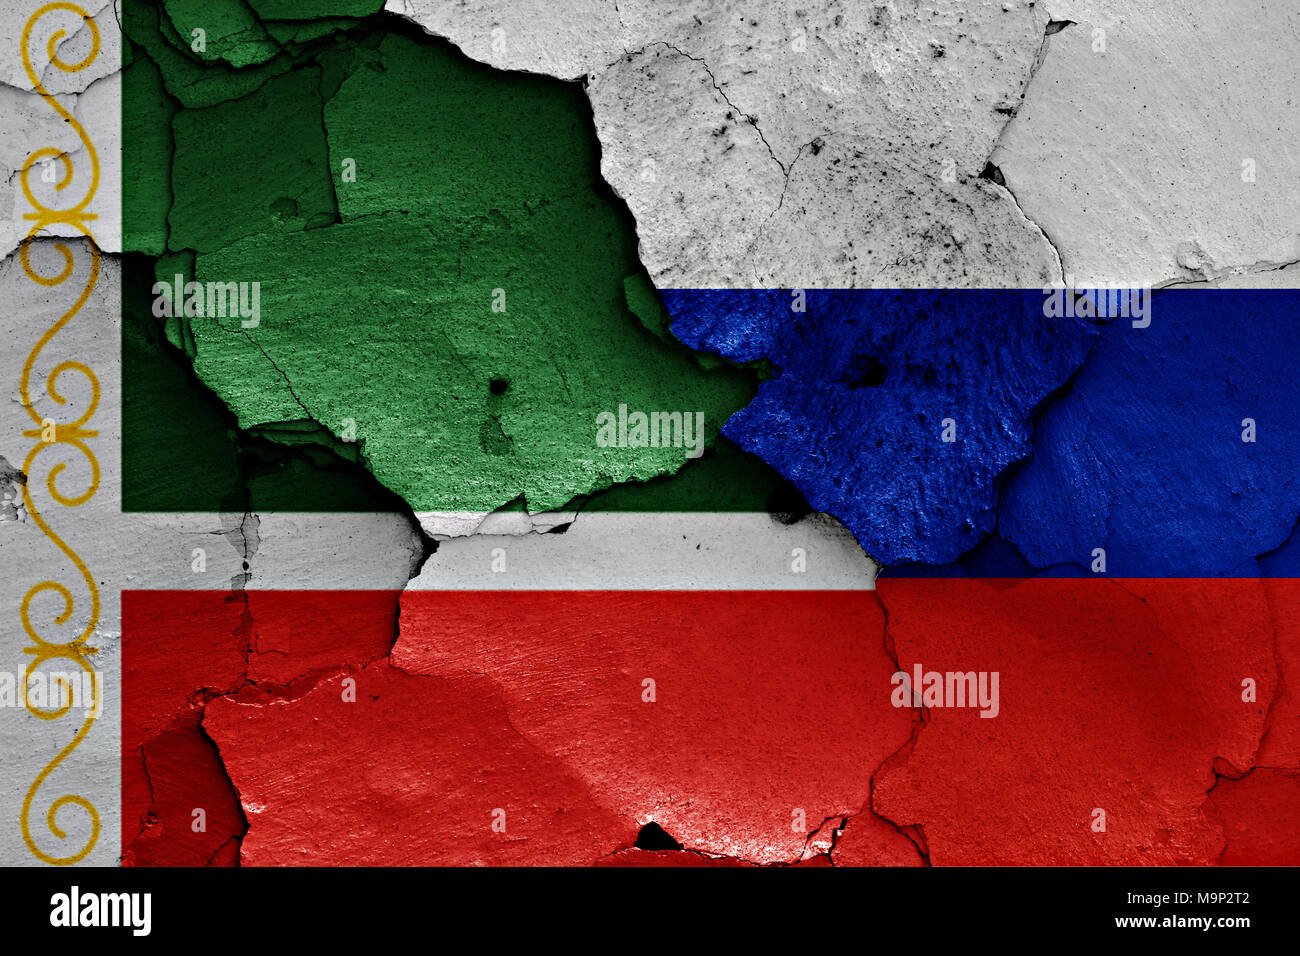 flags of Chechnya and Russia painted on cracked wall Stock Photo